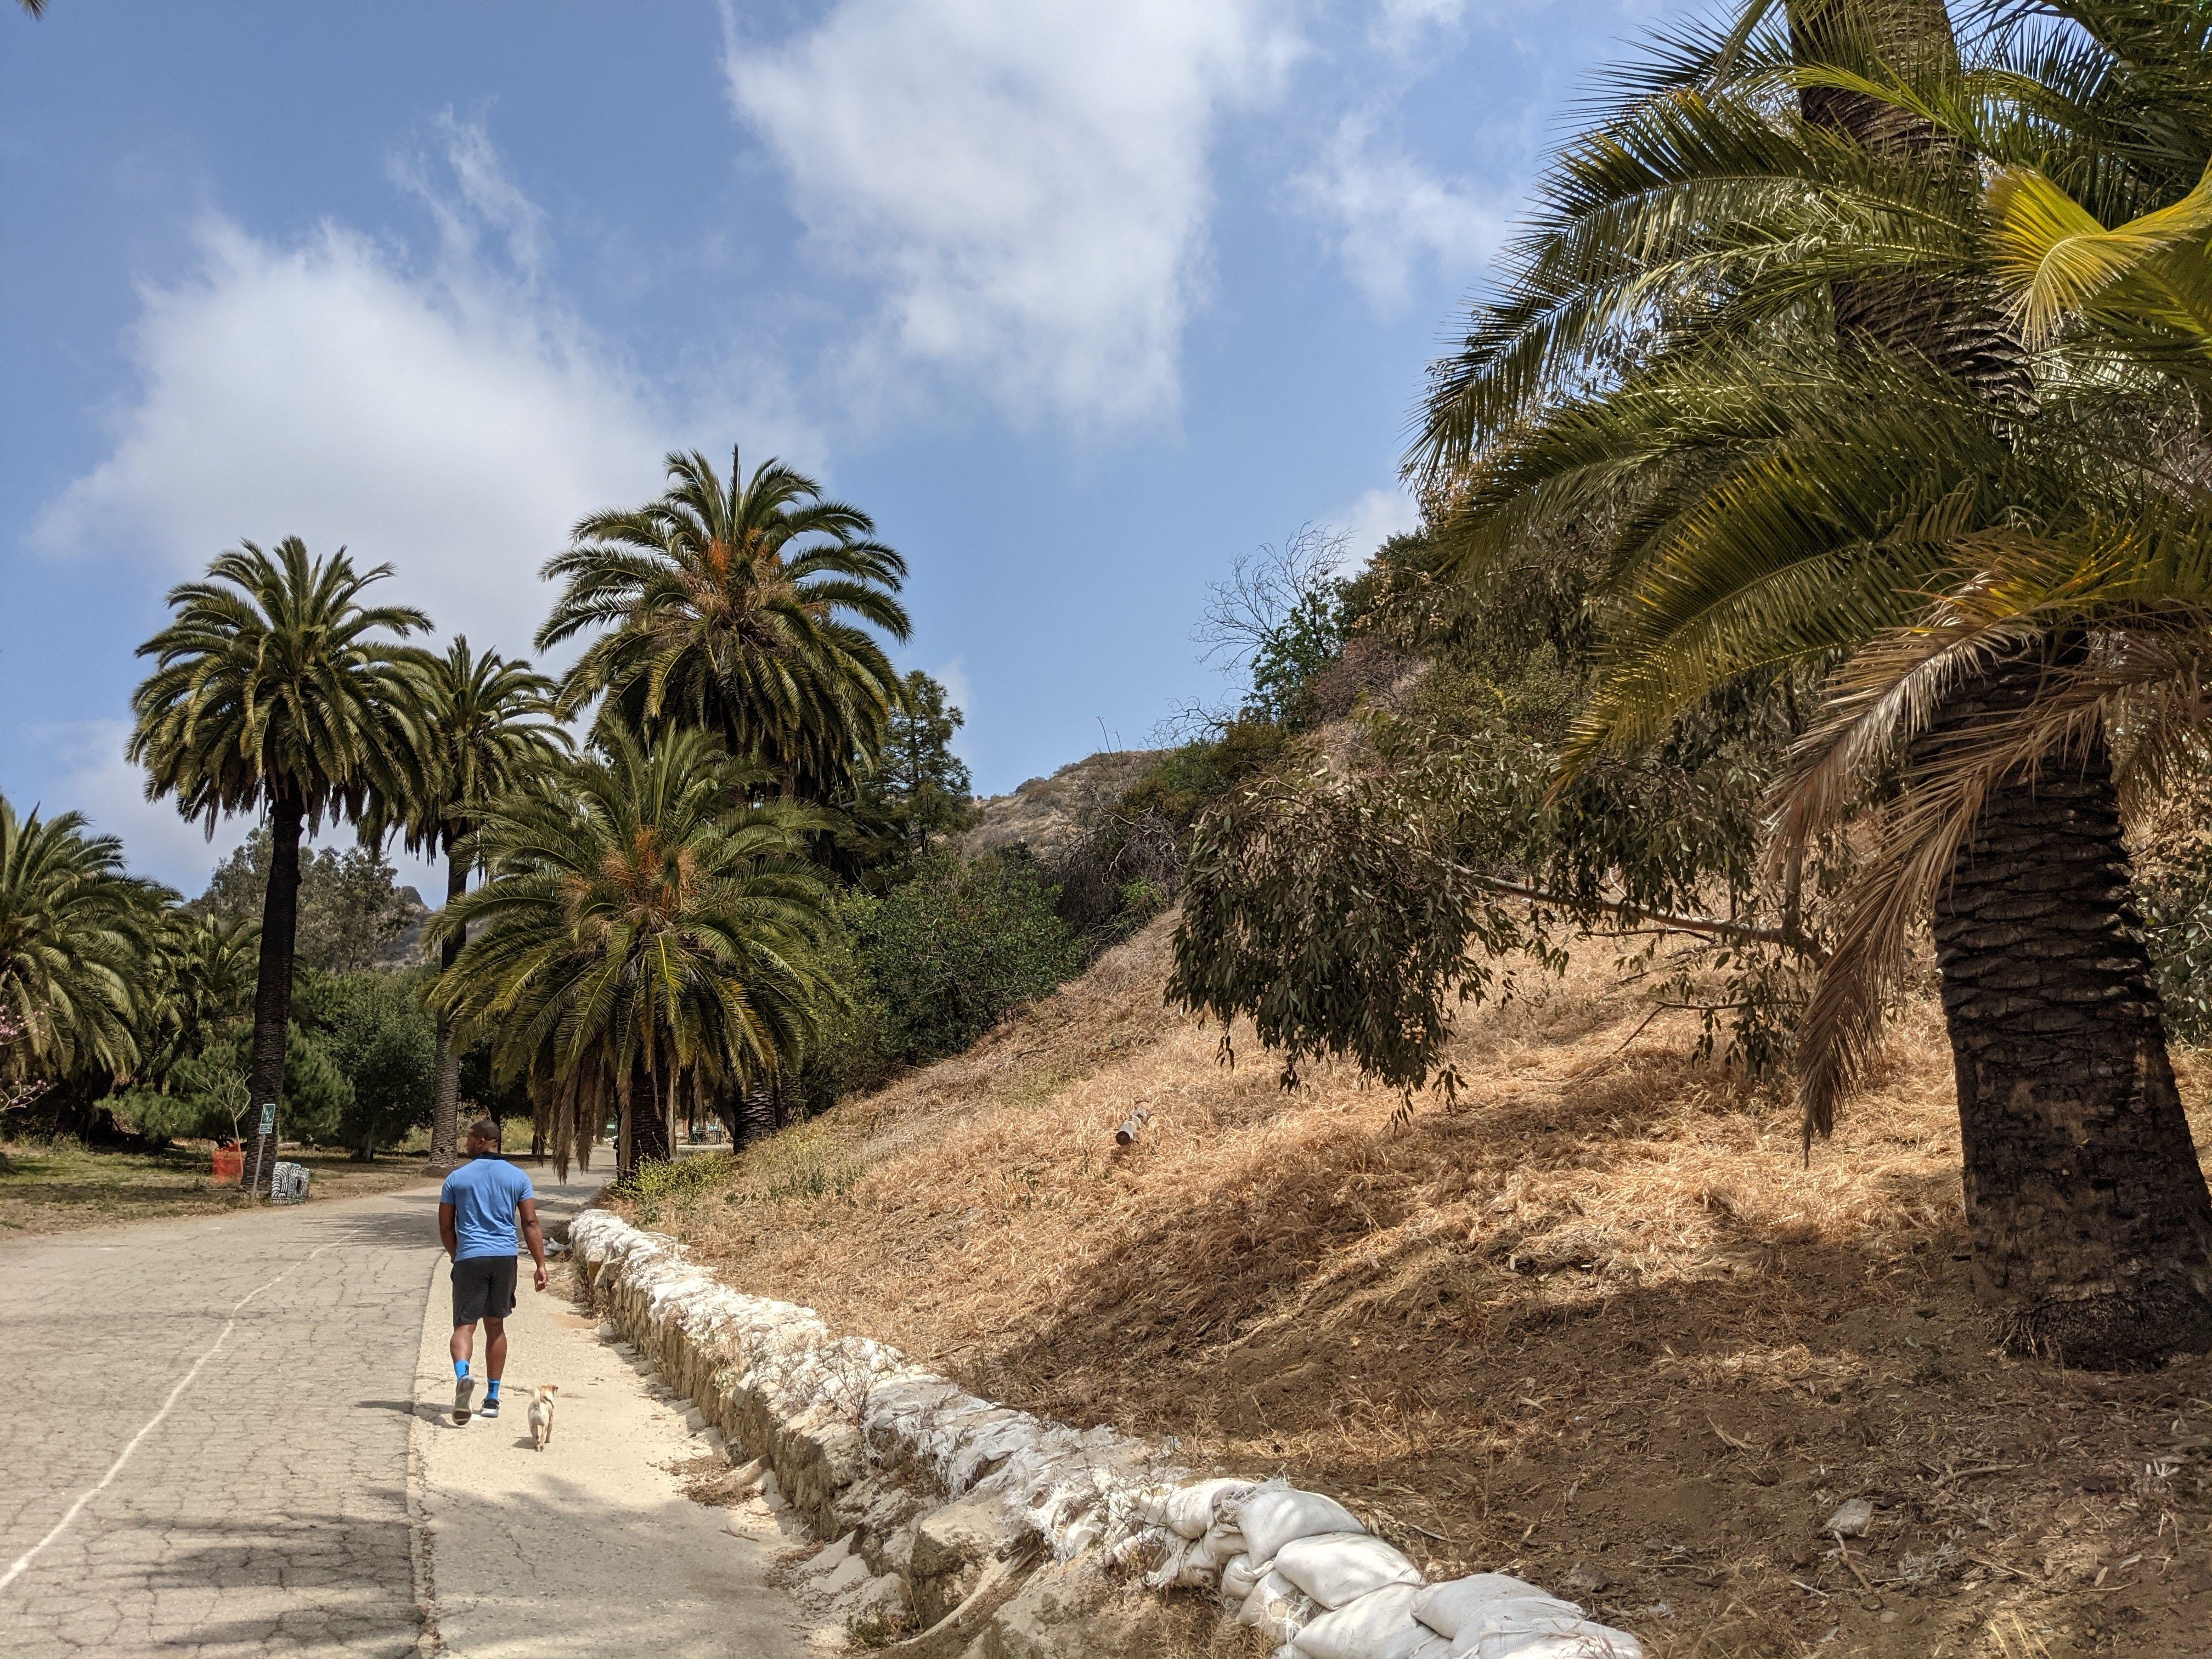 Man and his dog walking along a flat pathway with palm trees at Runyon Canyon in Los Angeles